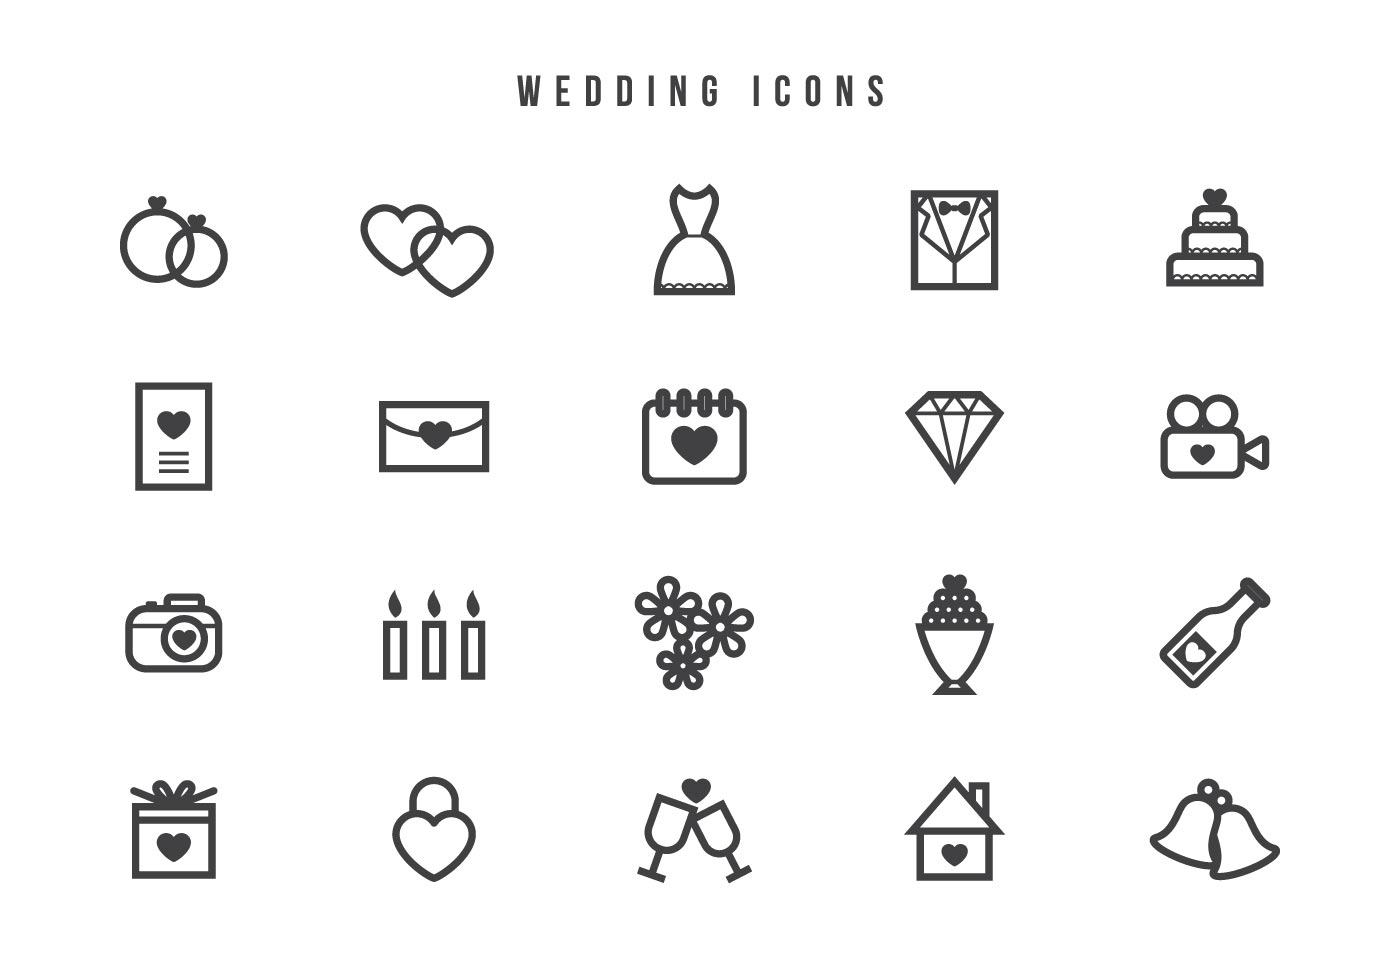 Wedding Free Vector Art